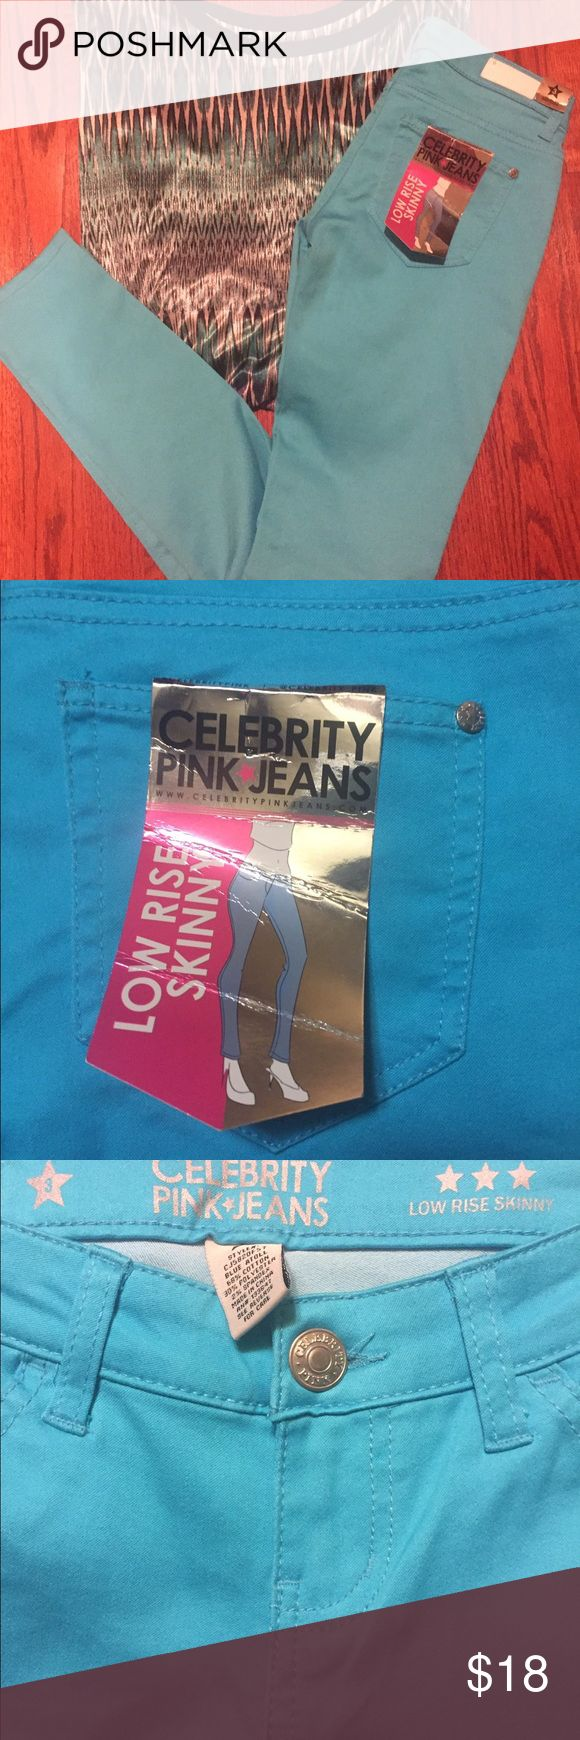 NWT Celebrity Pink Jeans Third pic is best of the real color!   Brand new stretchy turquoise colored jeans.  30 inch inseam.  Low rise skinny.  Super cute! Celebrity Pink Jeans Skinny